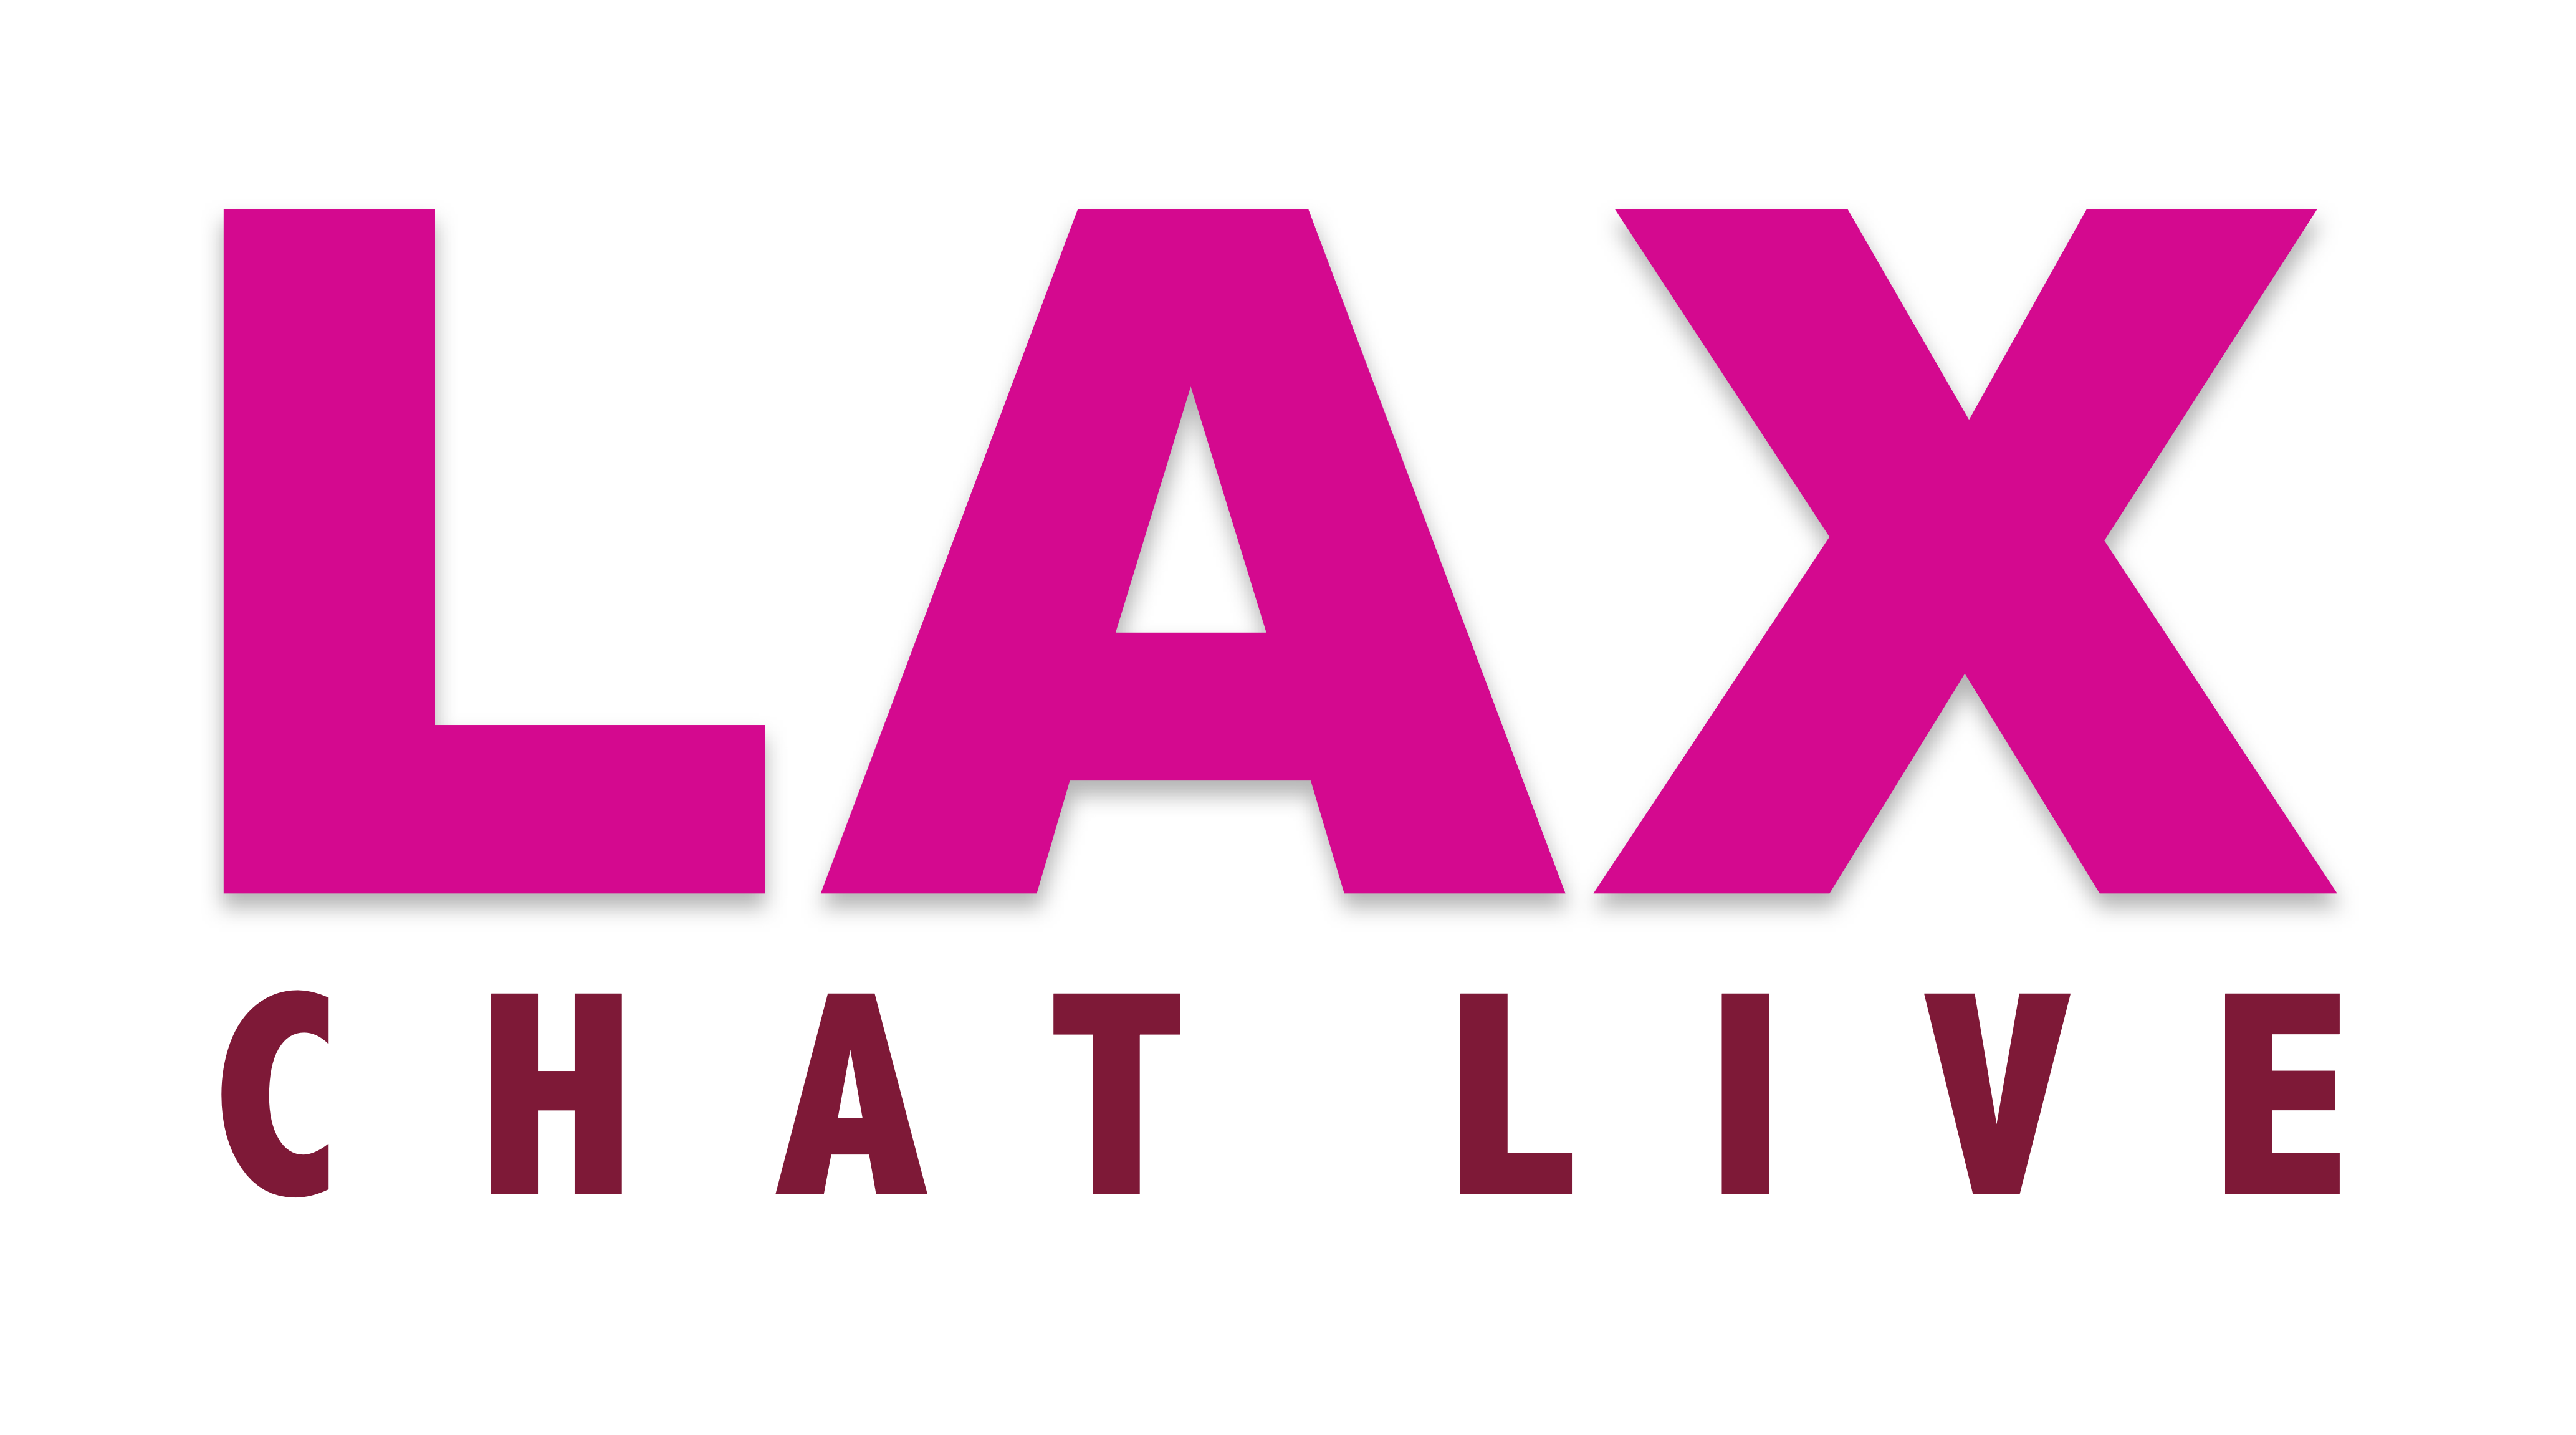 lax chat live BLANK